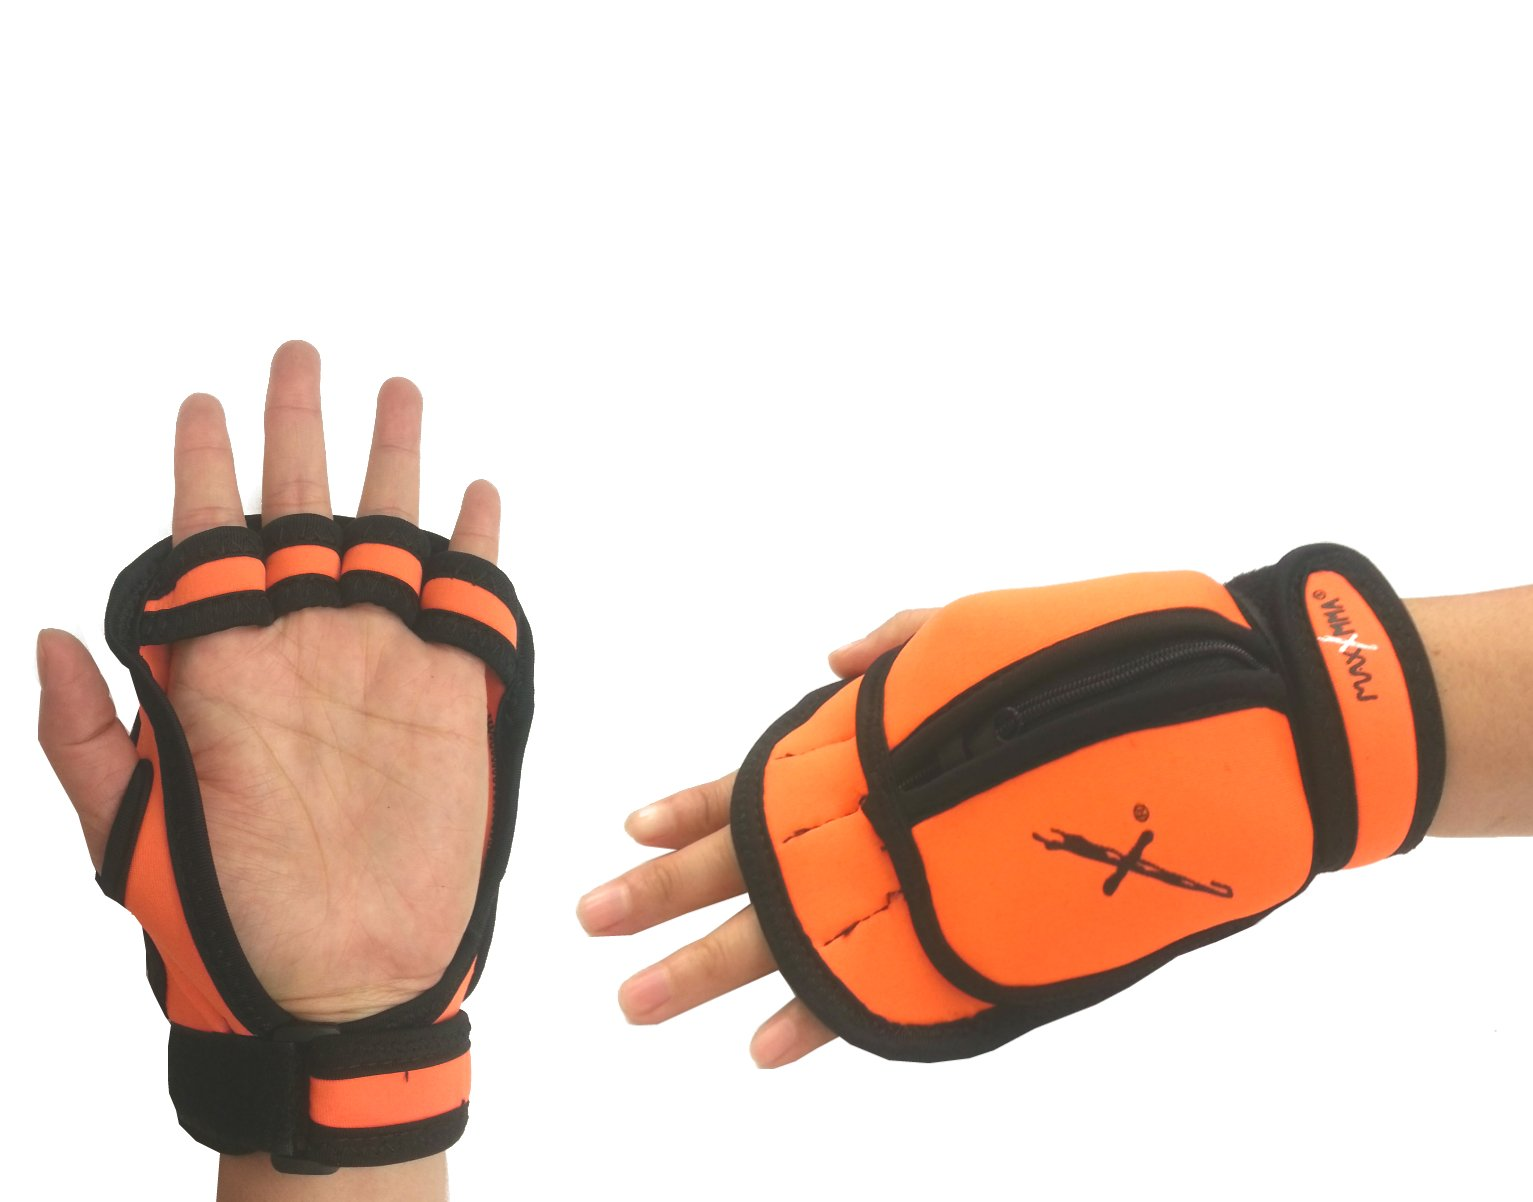 MaxxMMA Adjustable Weighted Gloves - Removable Weight 1 lb. x 2 (Orange)